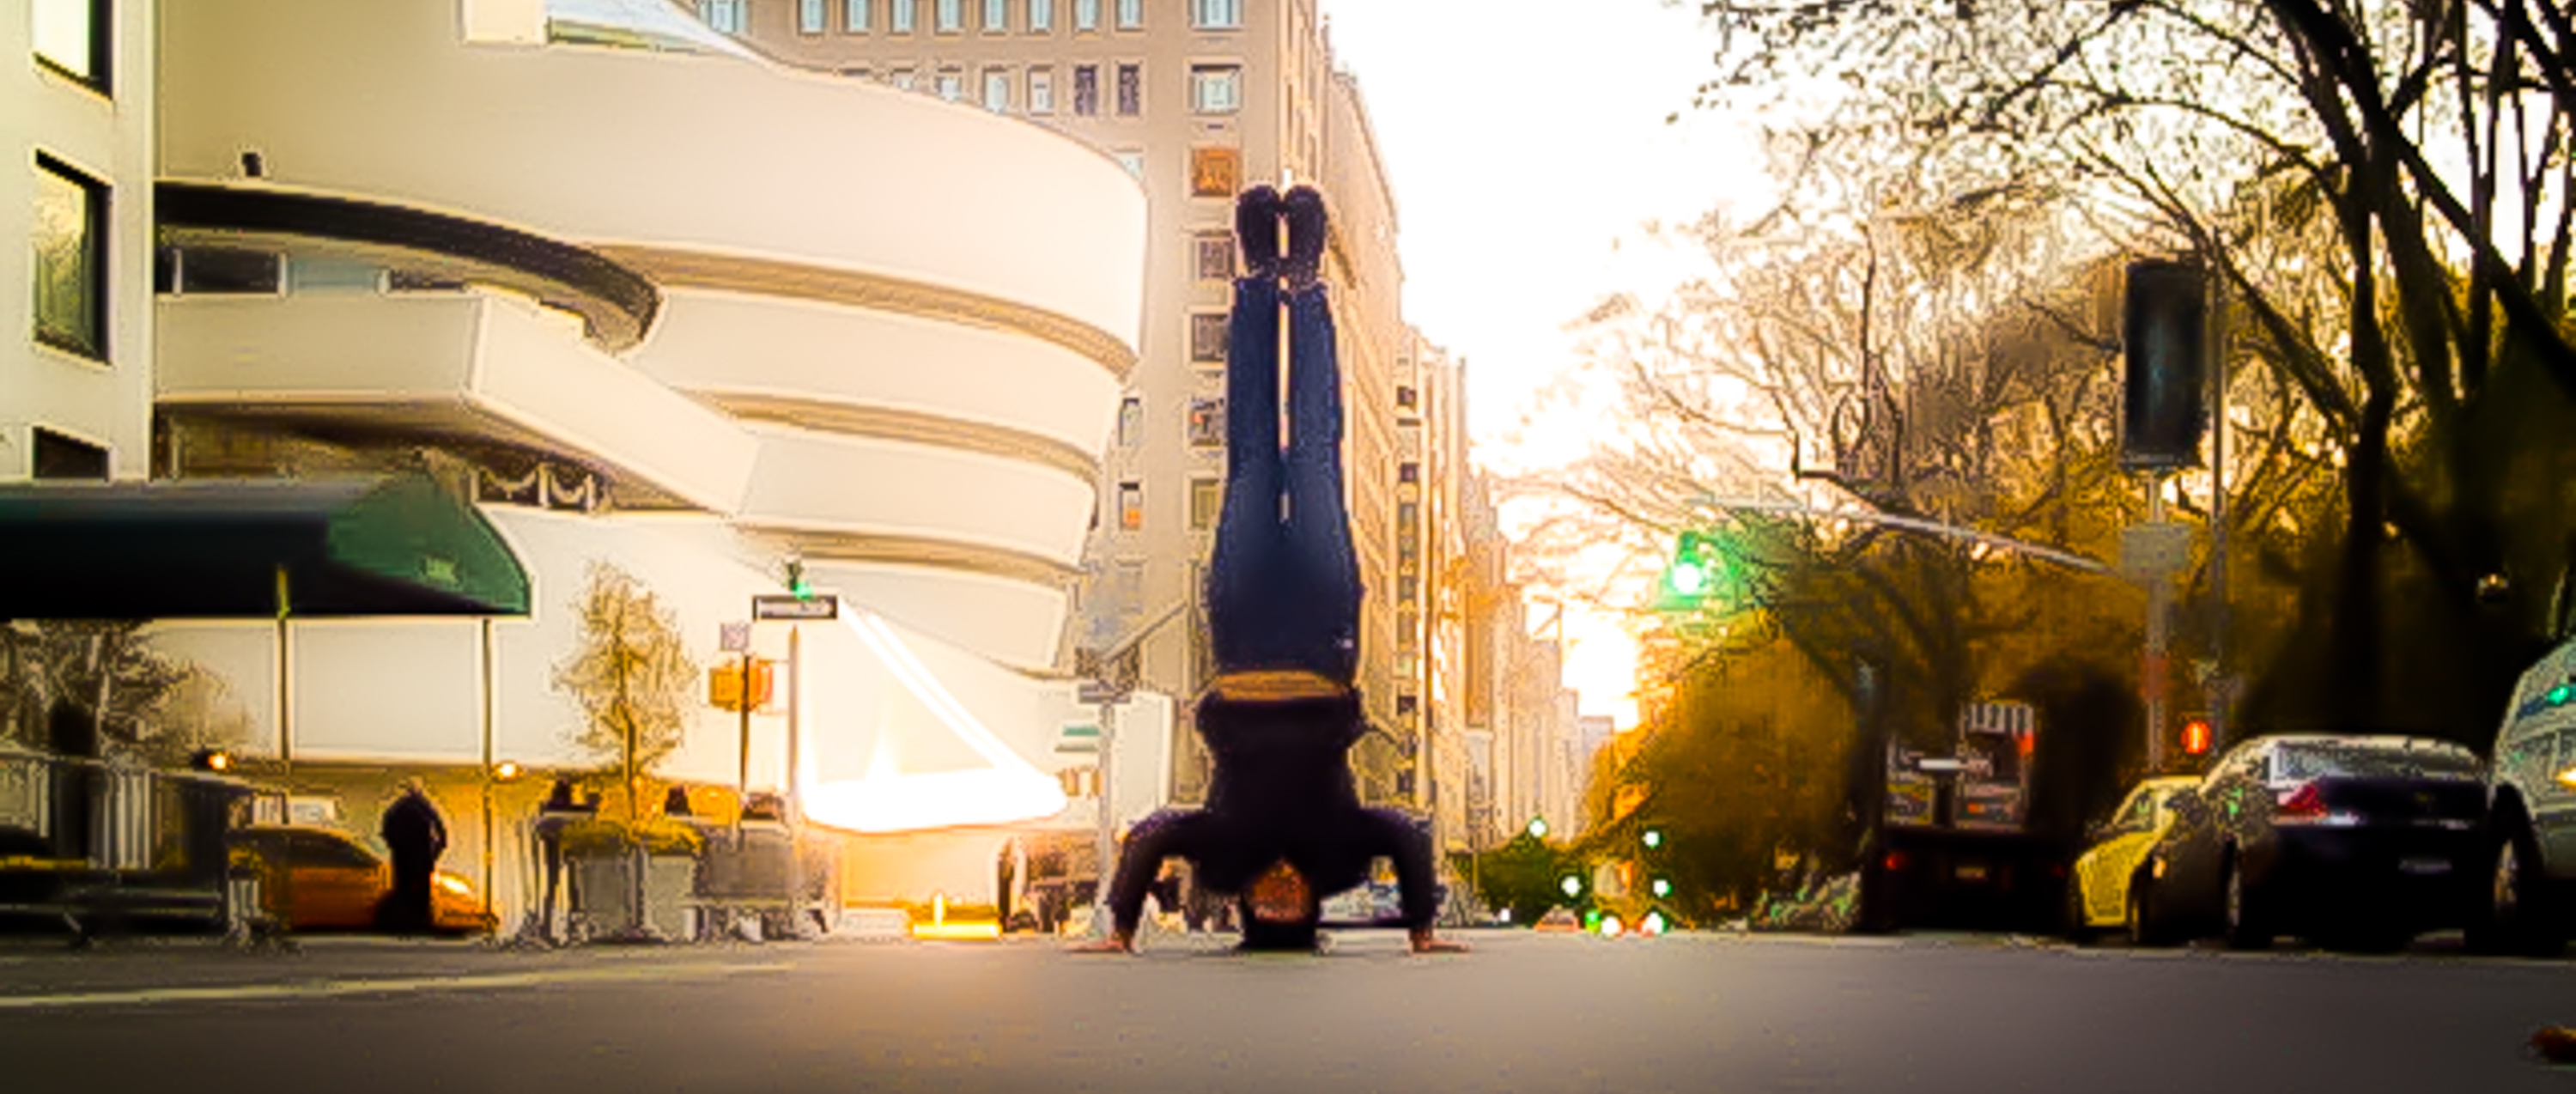 squeek steele does a headstand on 5th Ave, NYC